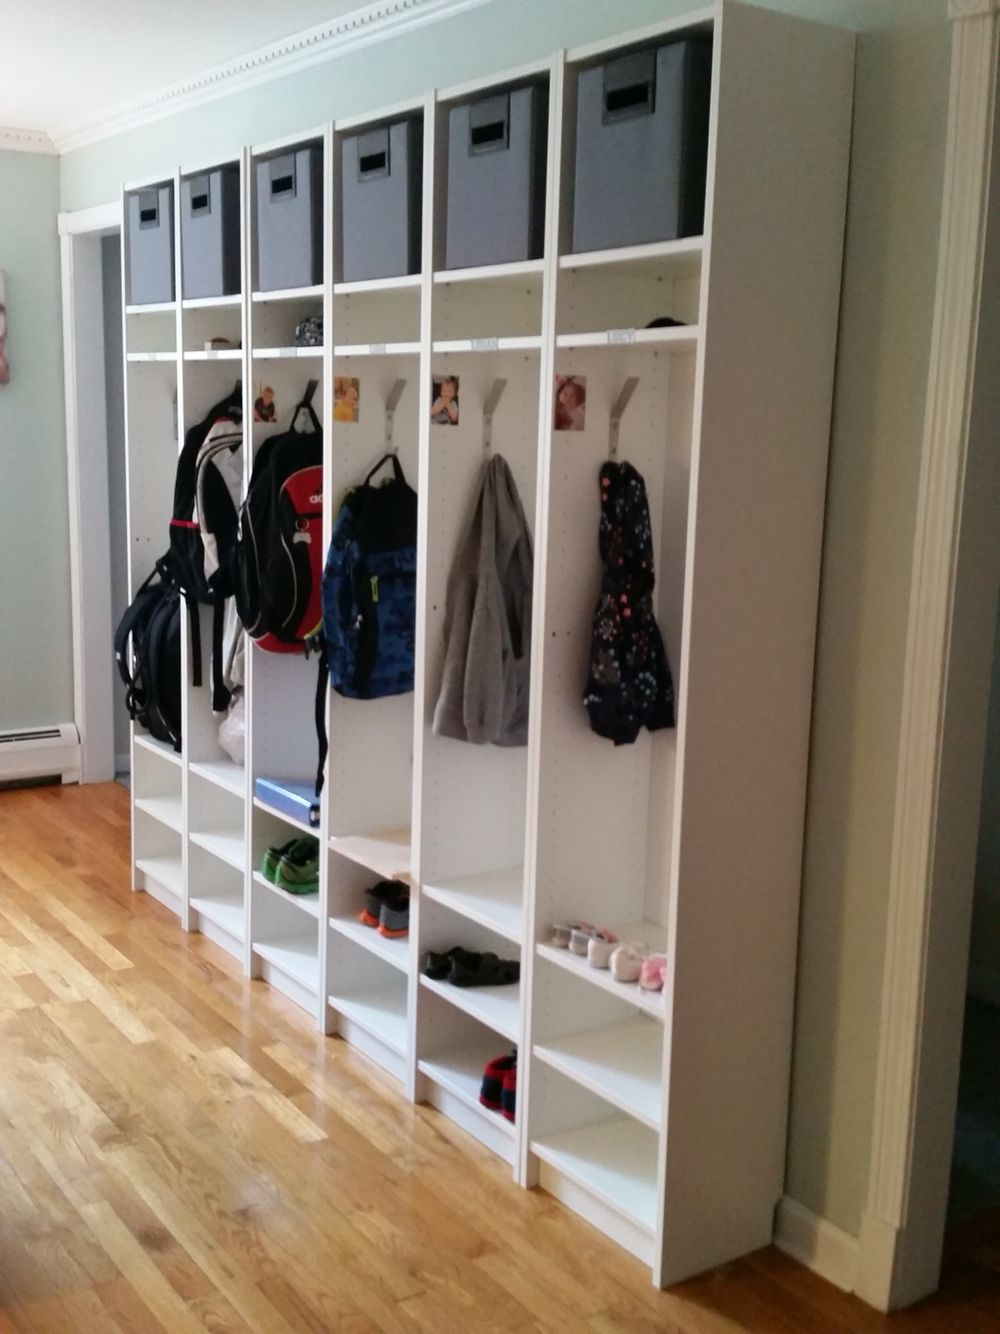 ikea hack billy bookcases turned cubbies motherwood past projects pinterest ikea hack. Black Bedroom Furniture Sets. Home Design Ideas